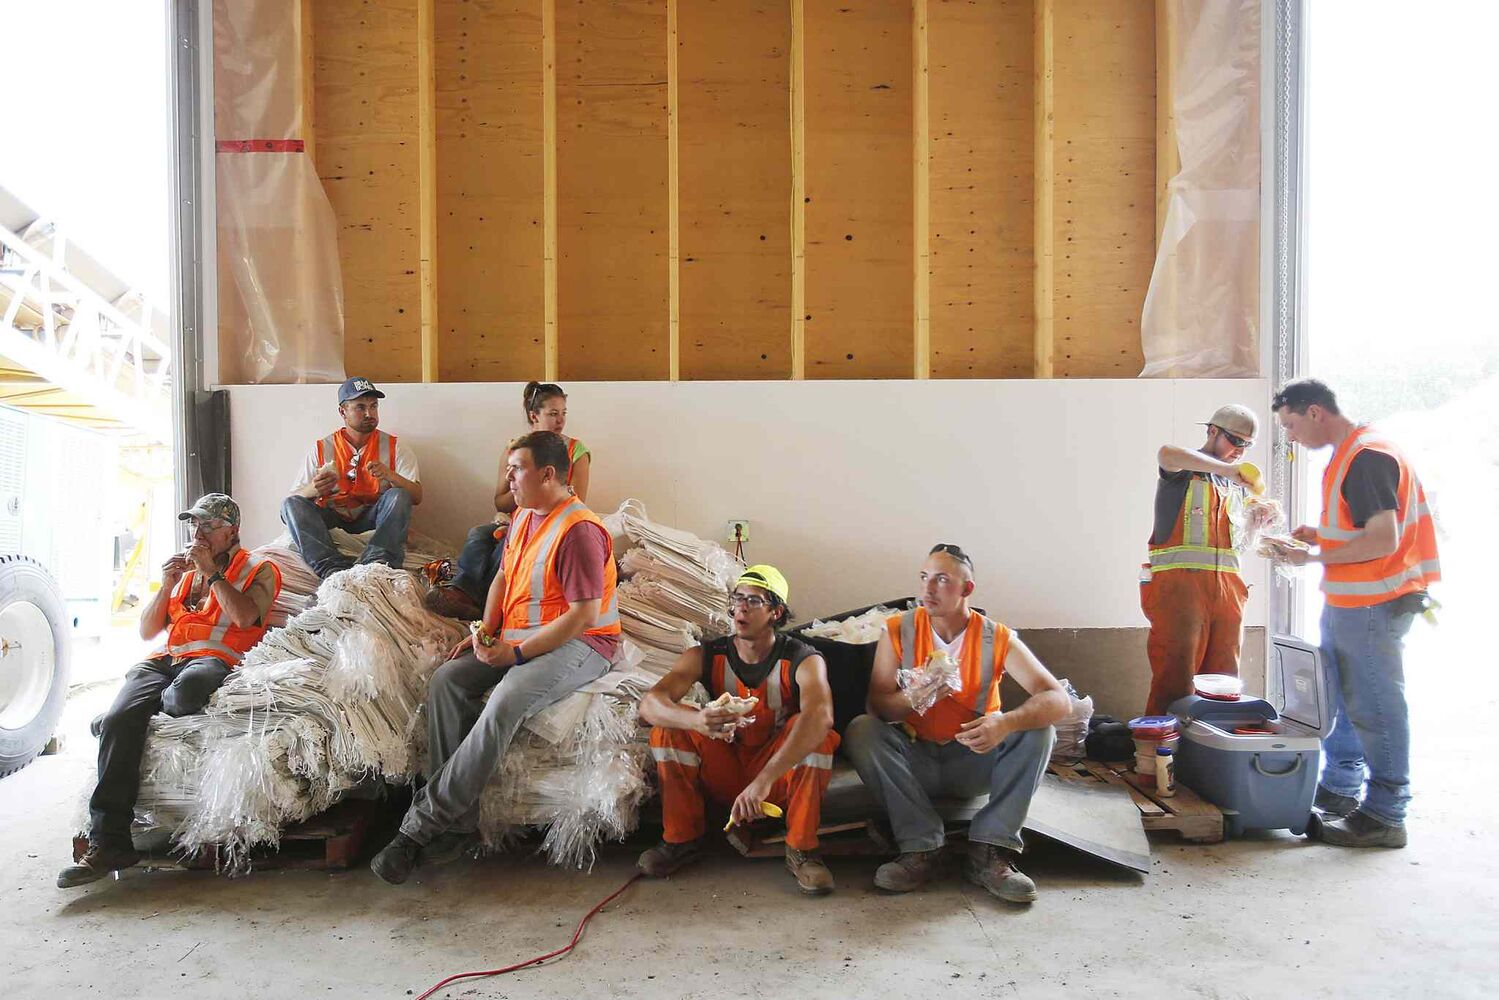 A provincial crew take a break after filling and loading sandbags in 30C temperatures in Portage la Prairie, Man. Saturday. (John Woods / The Canadian Press)